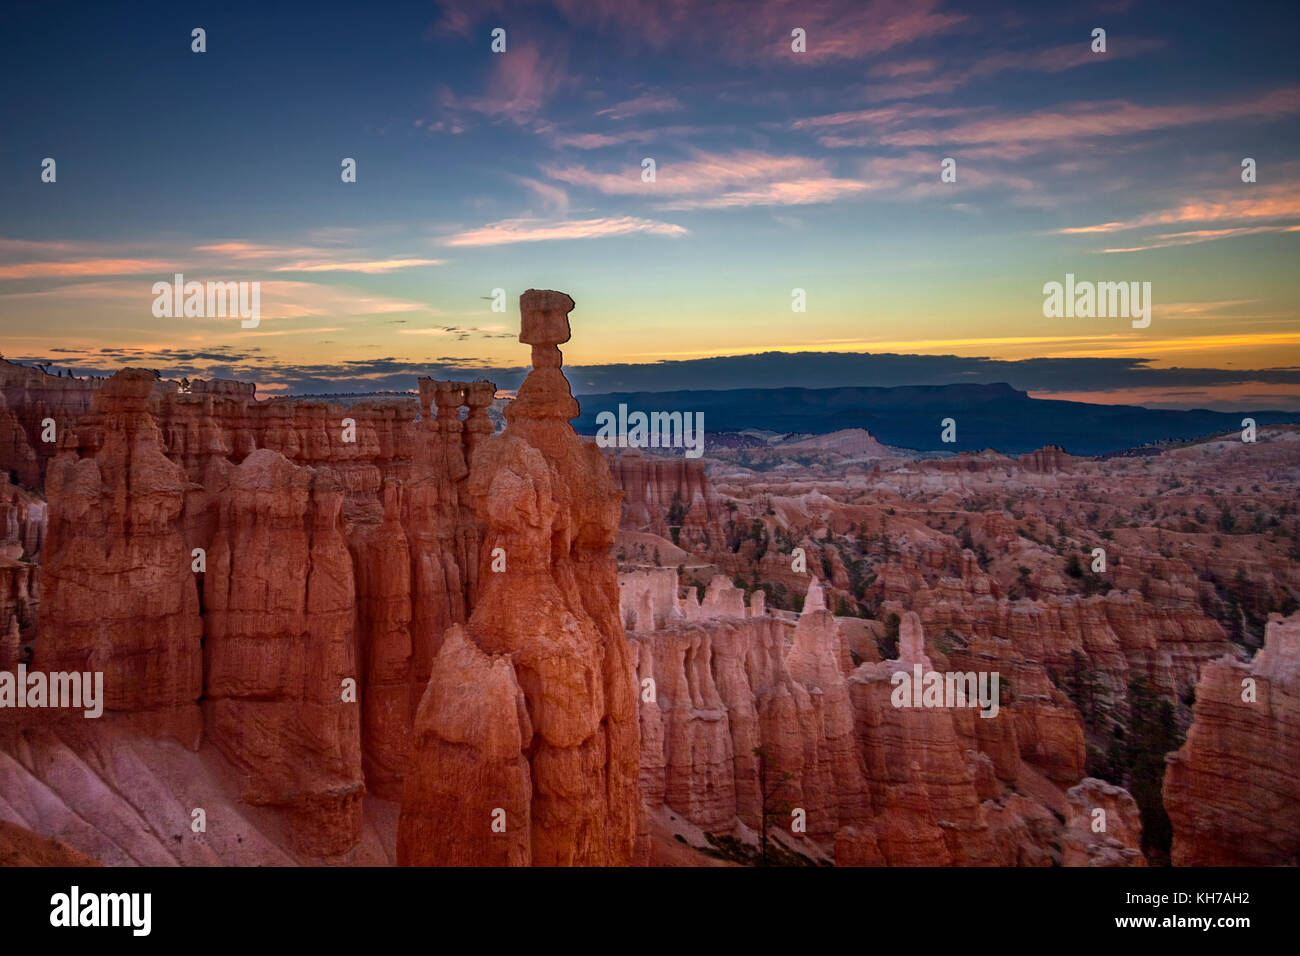 Bryce Canyon - Utah - Stock Image